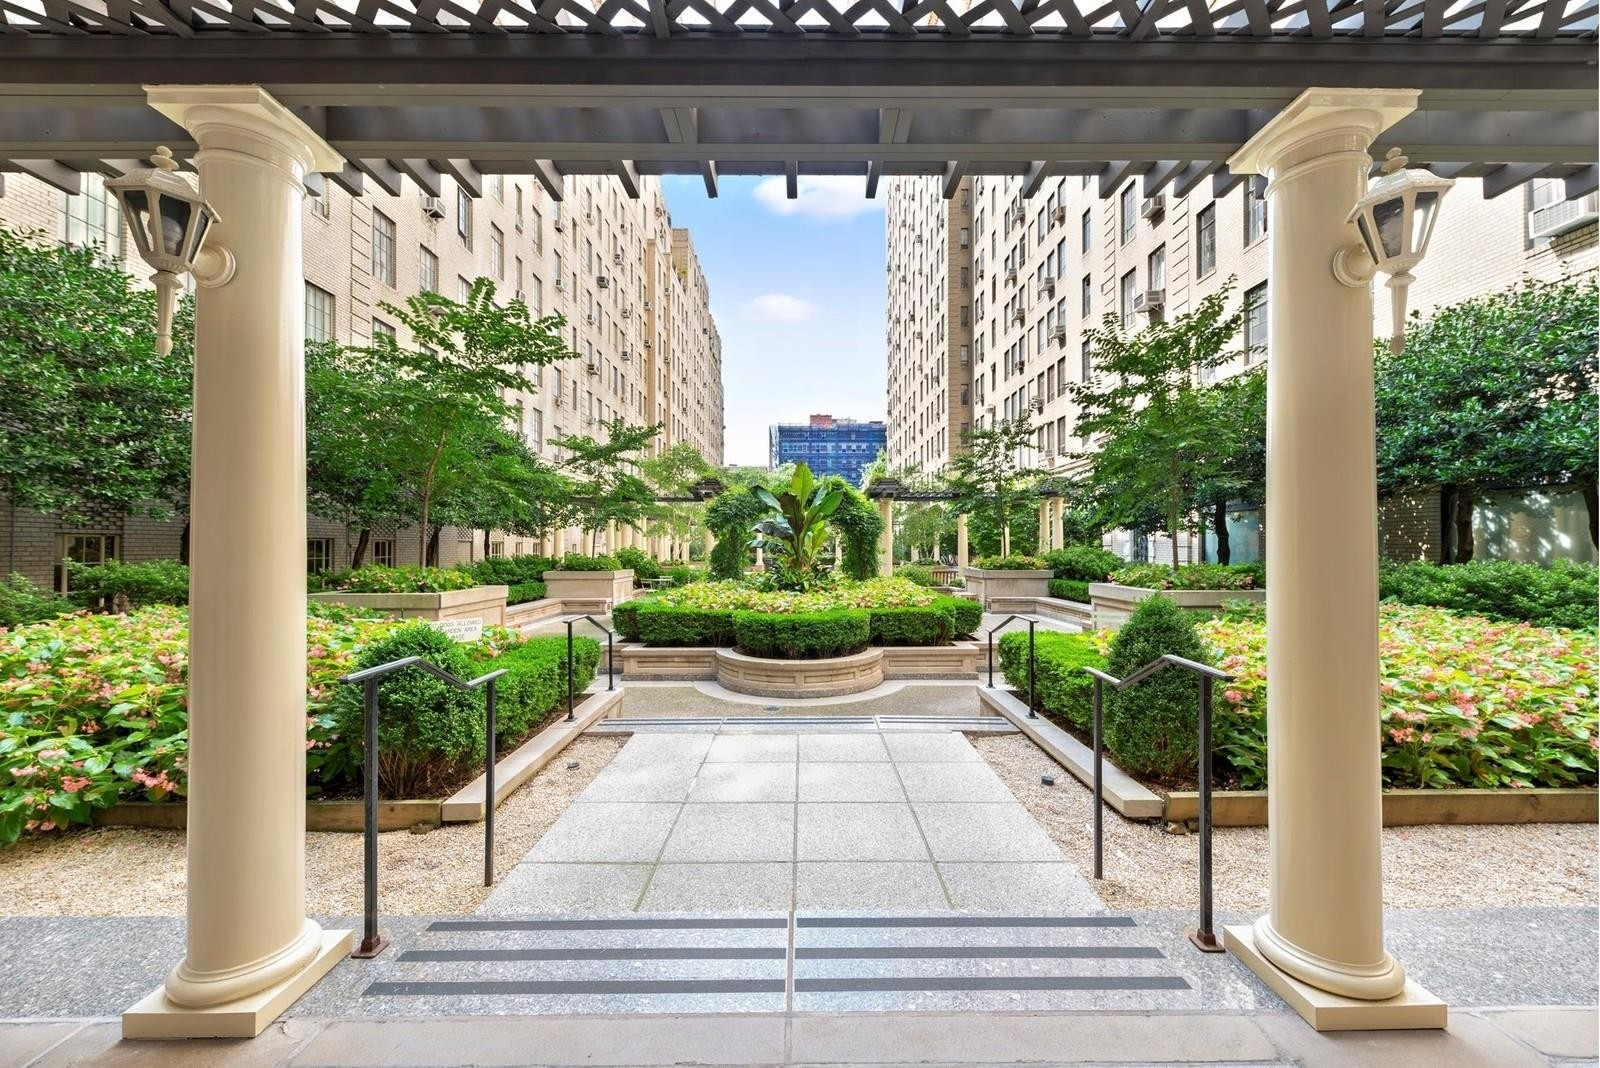 10. Condominiums at The Parc Vendome, 350 West 57th St, 12F Hell's Kitchen, New York